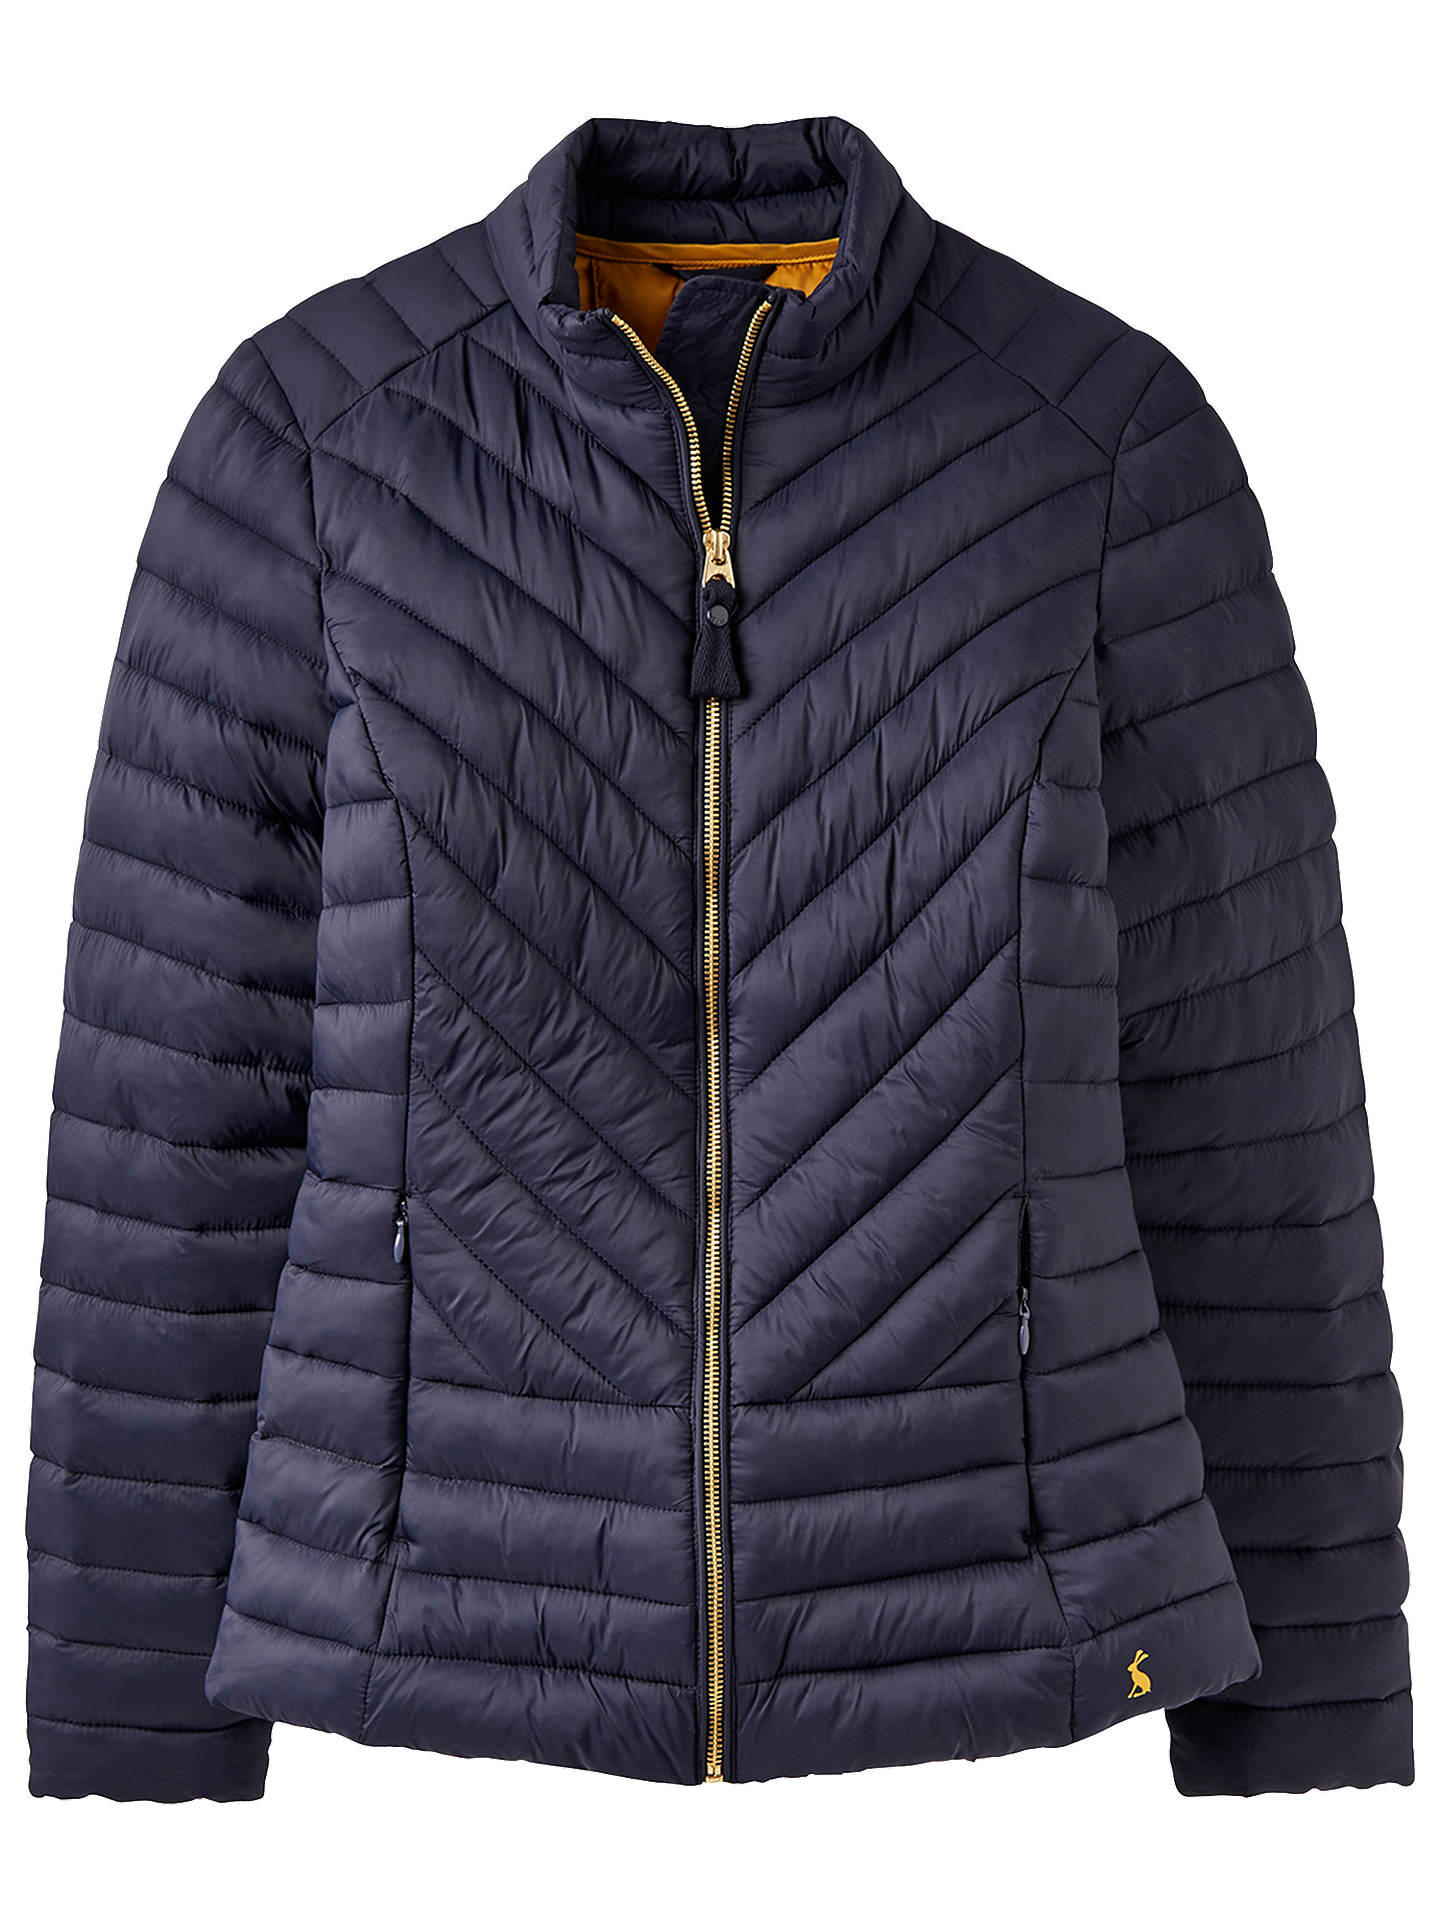 2c6c7fc58 Joules Elodie Chevron Quilted Jacket at John Lewis & Partners